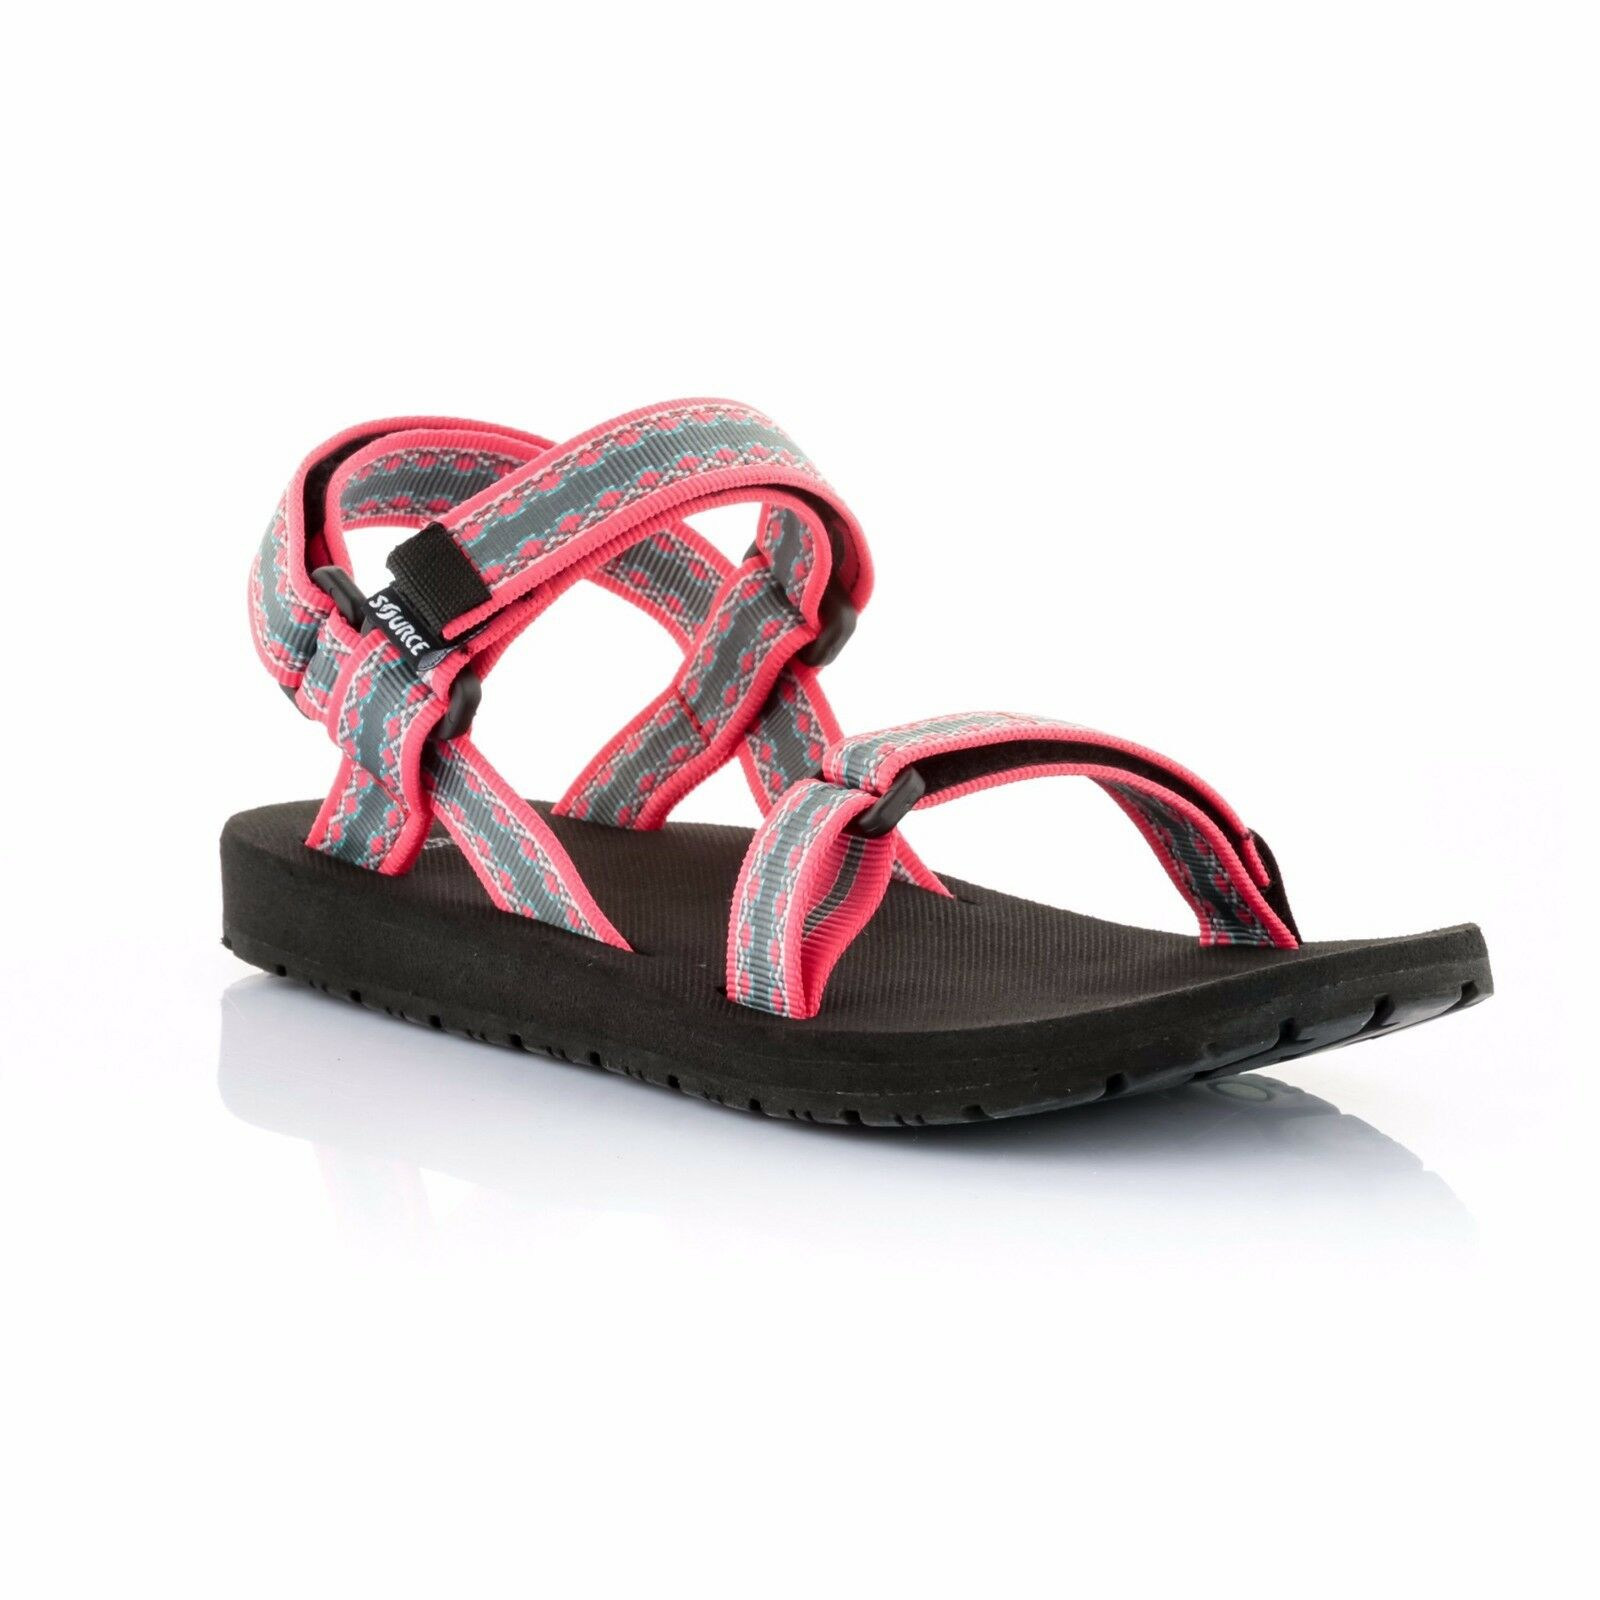 NEW Source Classic Women's Sports Hiking Outdoor Sandal - Made in Israel